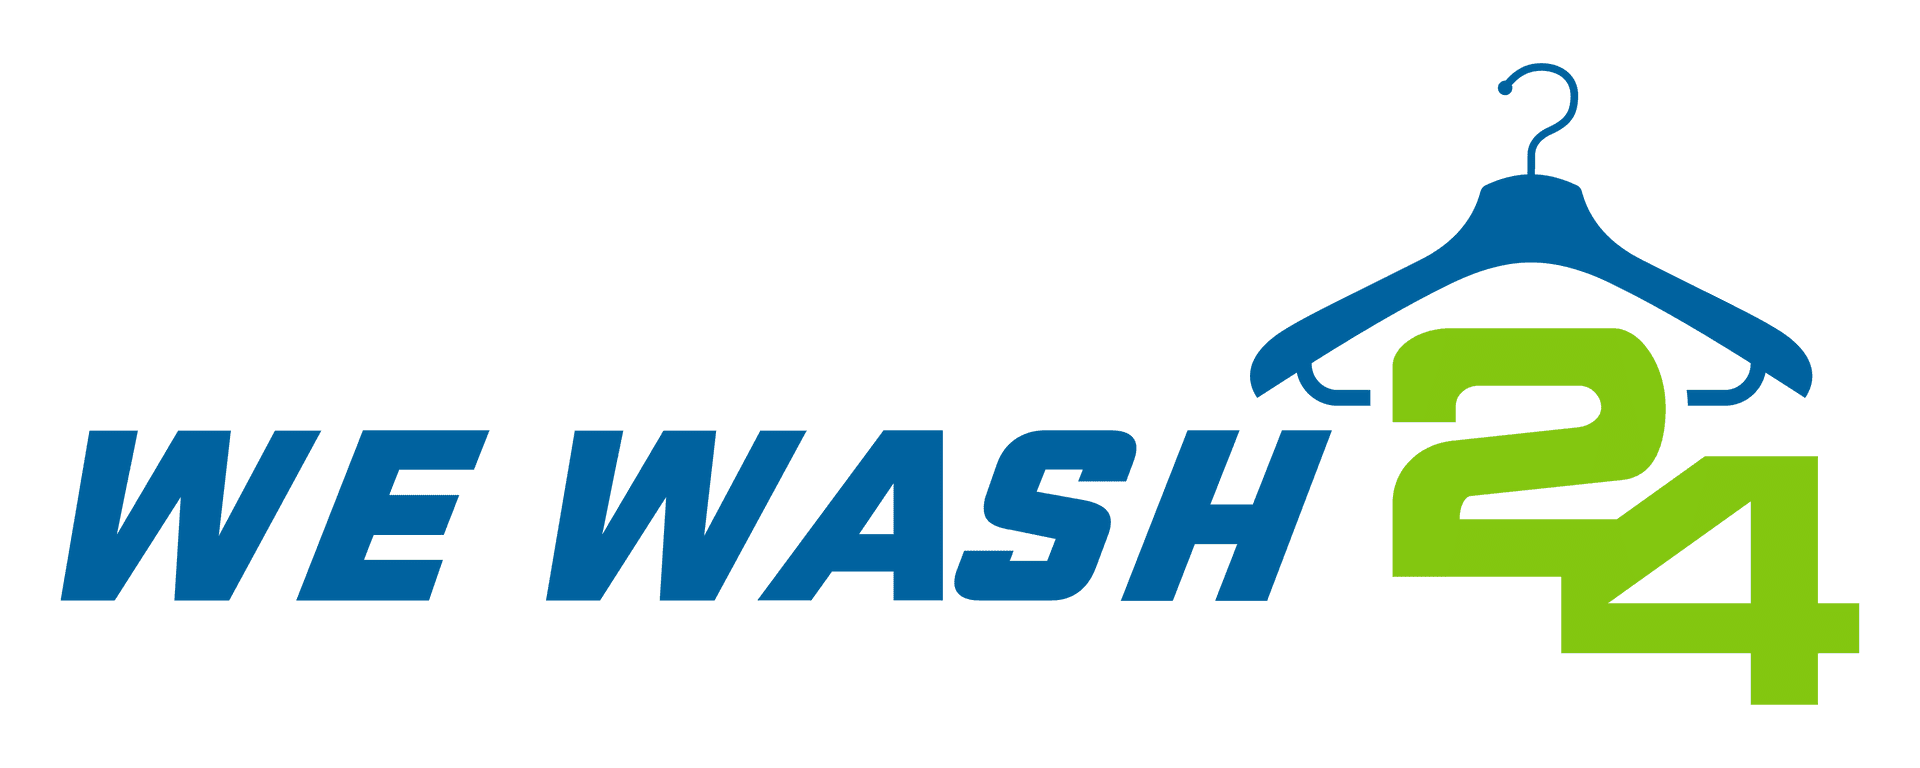 We Wash 24 logo